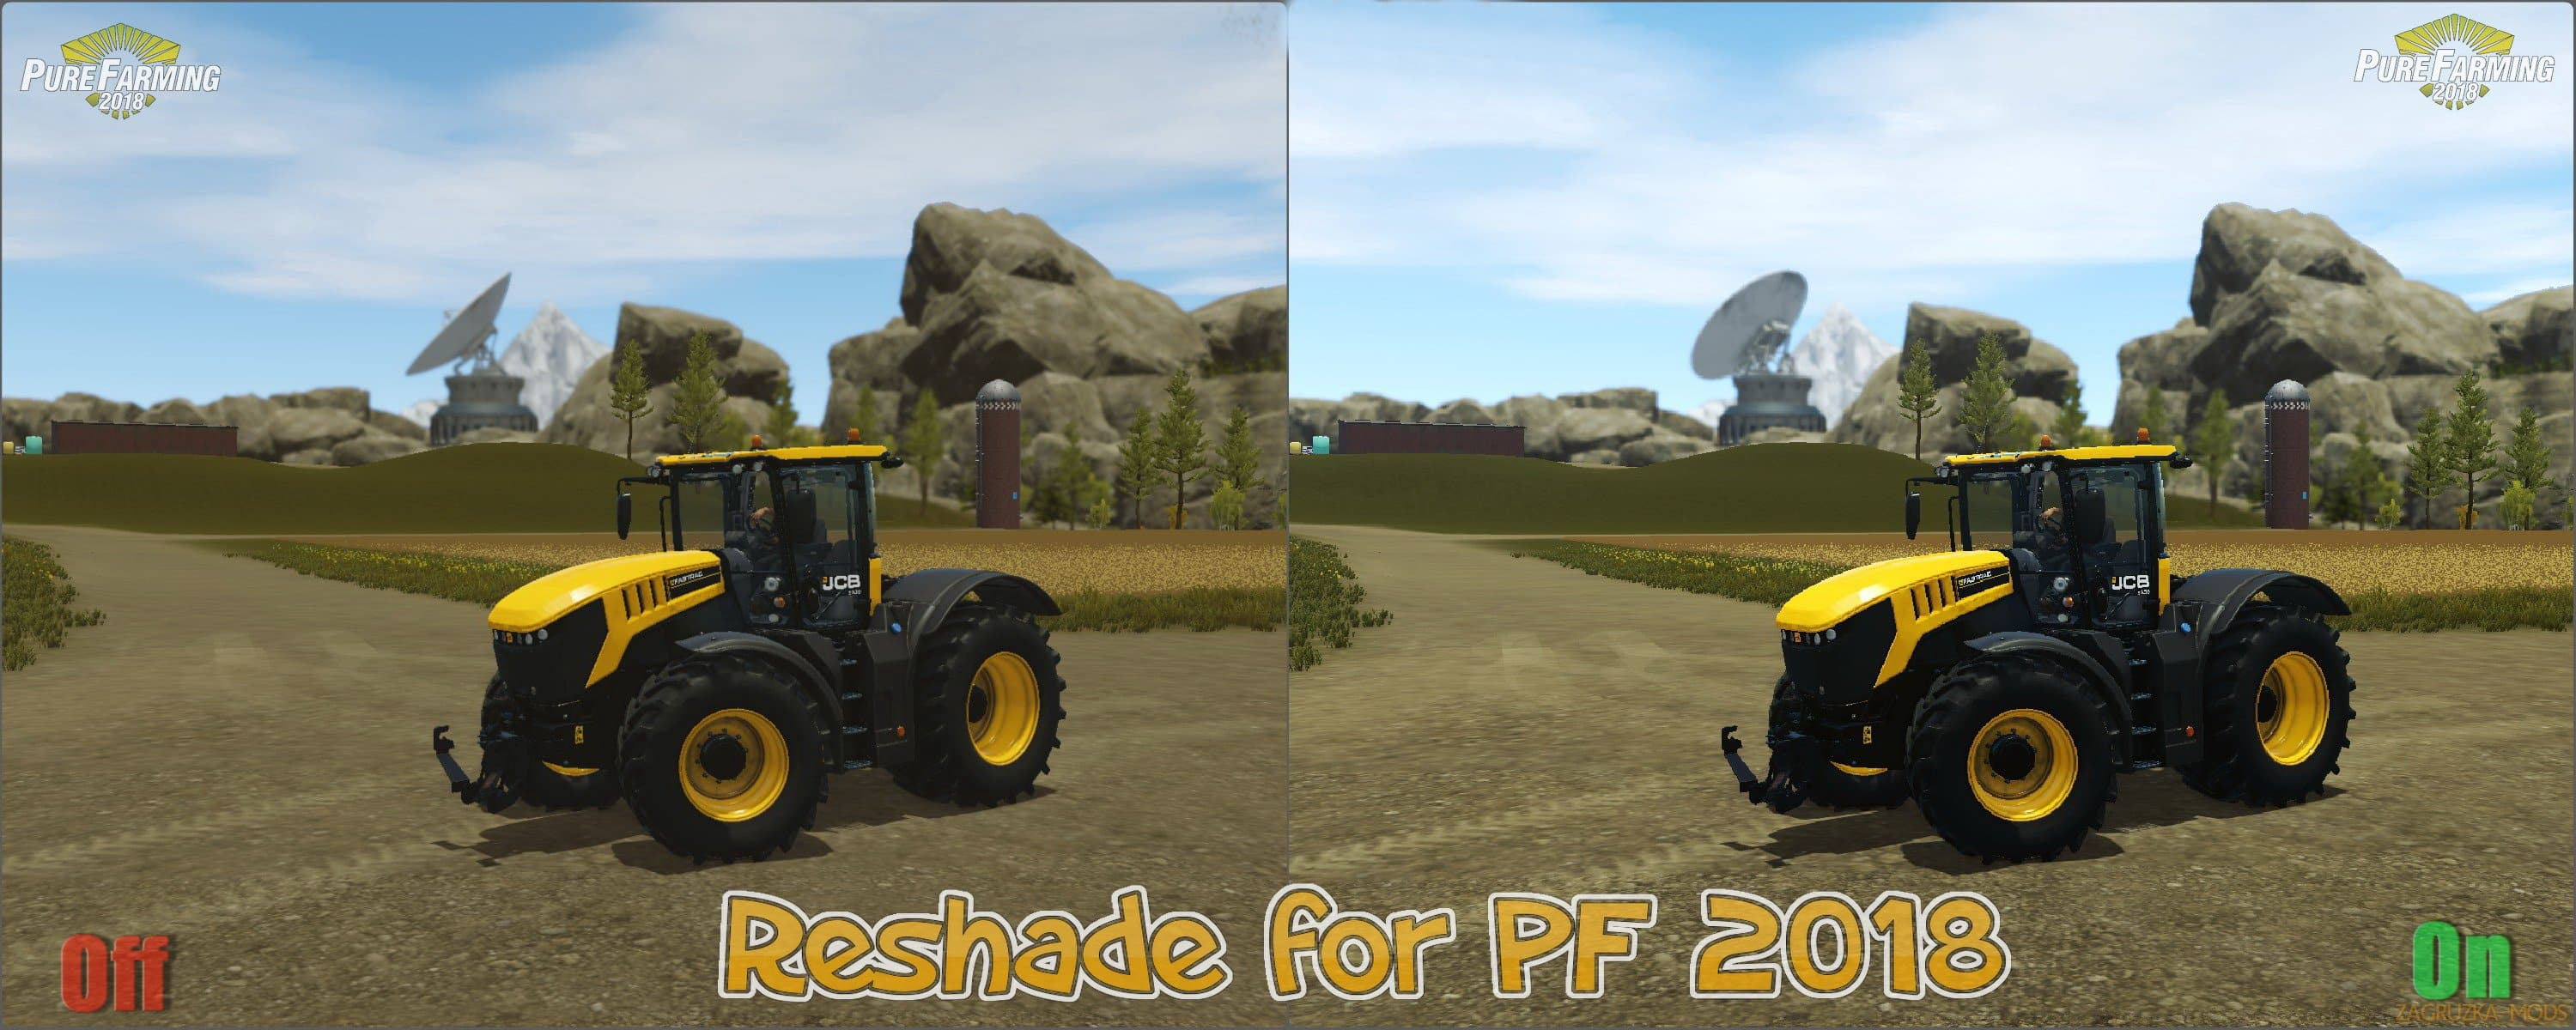 Reshade and SweetFX v1 0 - Pure Farming 2018 Mod